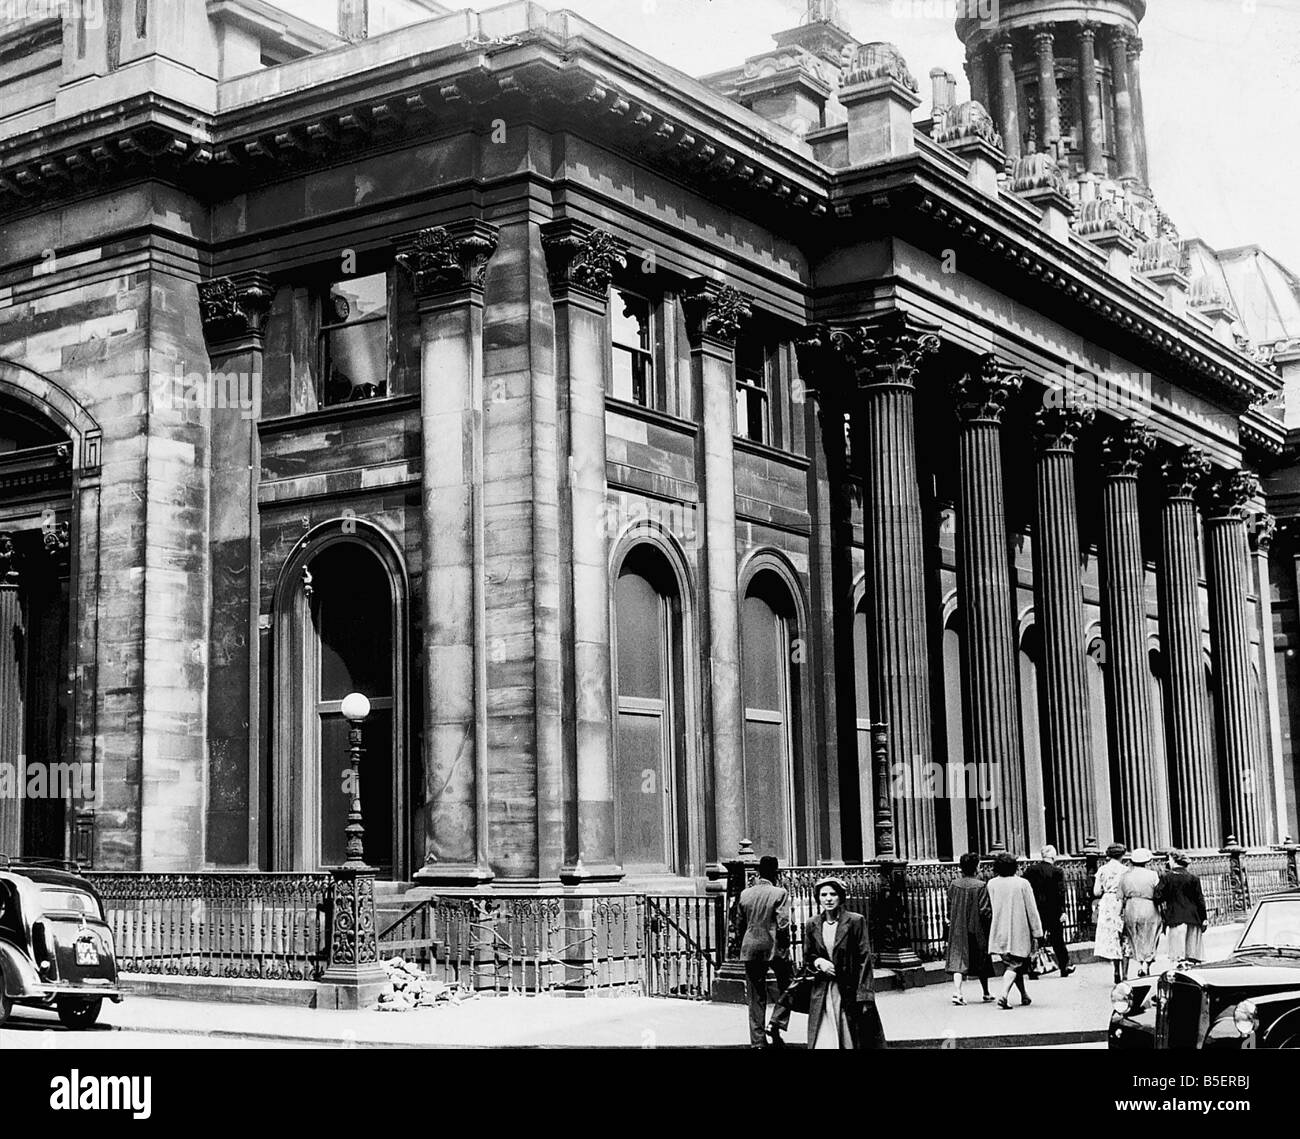 Architecture Buildings The Royal Exchange building which is now the Glasgow Gallery of Modern Art - Stock Image